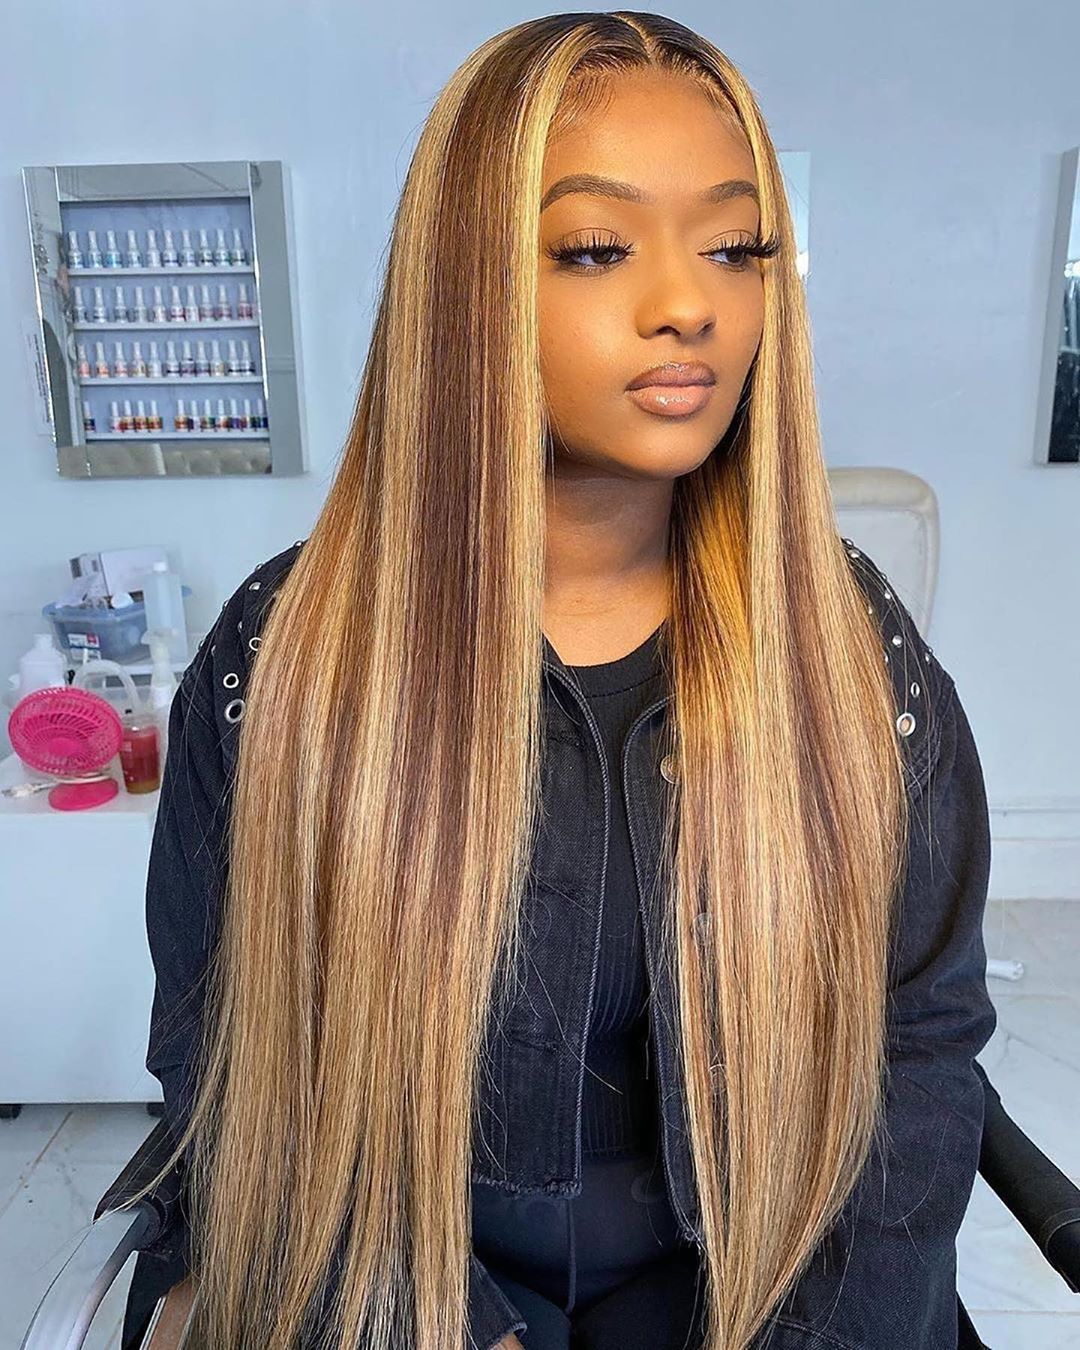 Lace Front Wigs Brown Wigs Blonde Wigs Long Straight Blonde Wig With Bangs Keira Knightley Blonde Wigs For Black Women